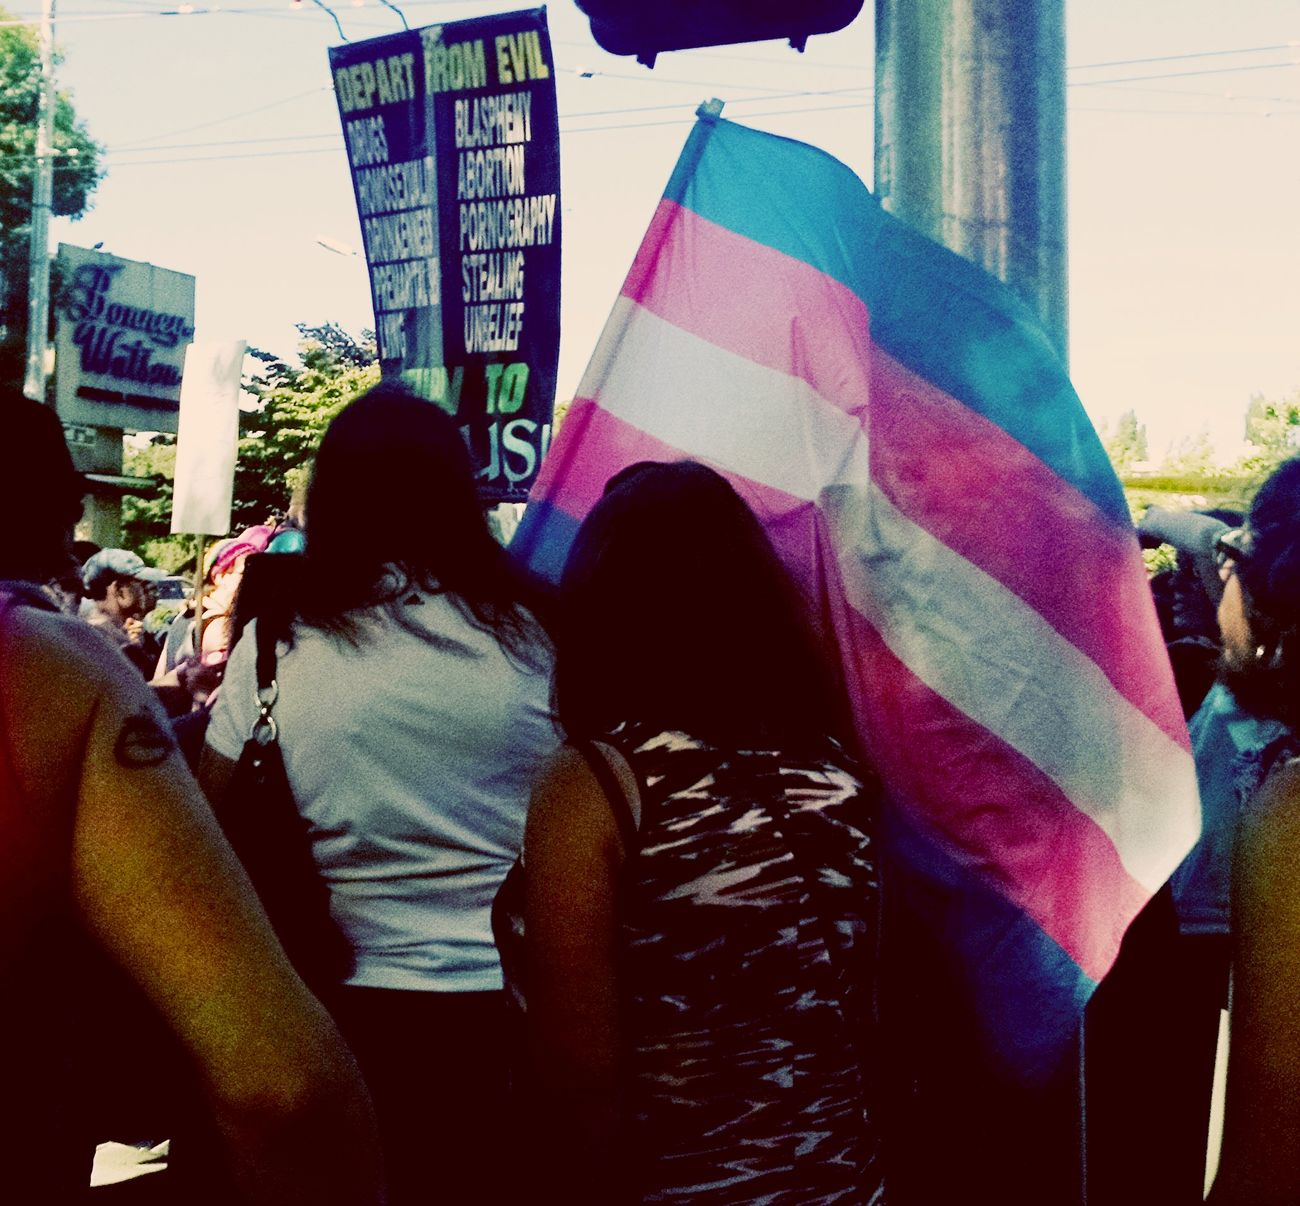 This photo was taken at Seattle's Trans Pride March while we waited for it to start. City Life City Street Day GenderEquality Lifestyles Outdoors Unity Unityindiversity Transgenderpride Transgender Against Homophobia The Photojournalist - 2016 EyeEm Awards